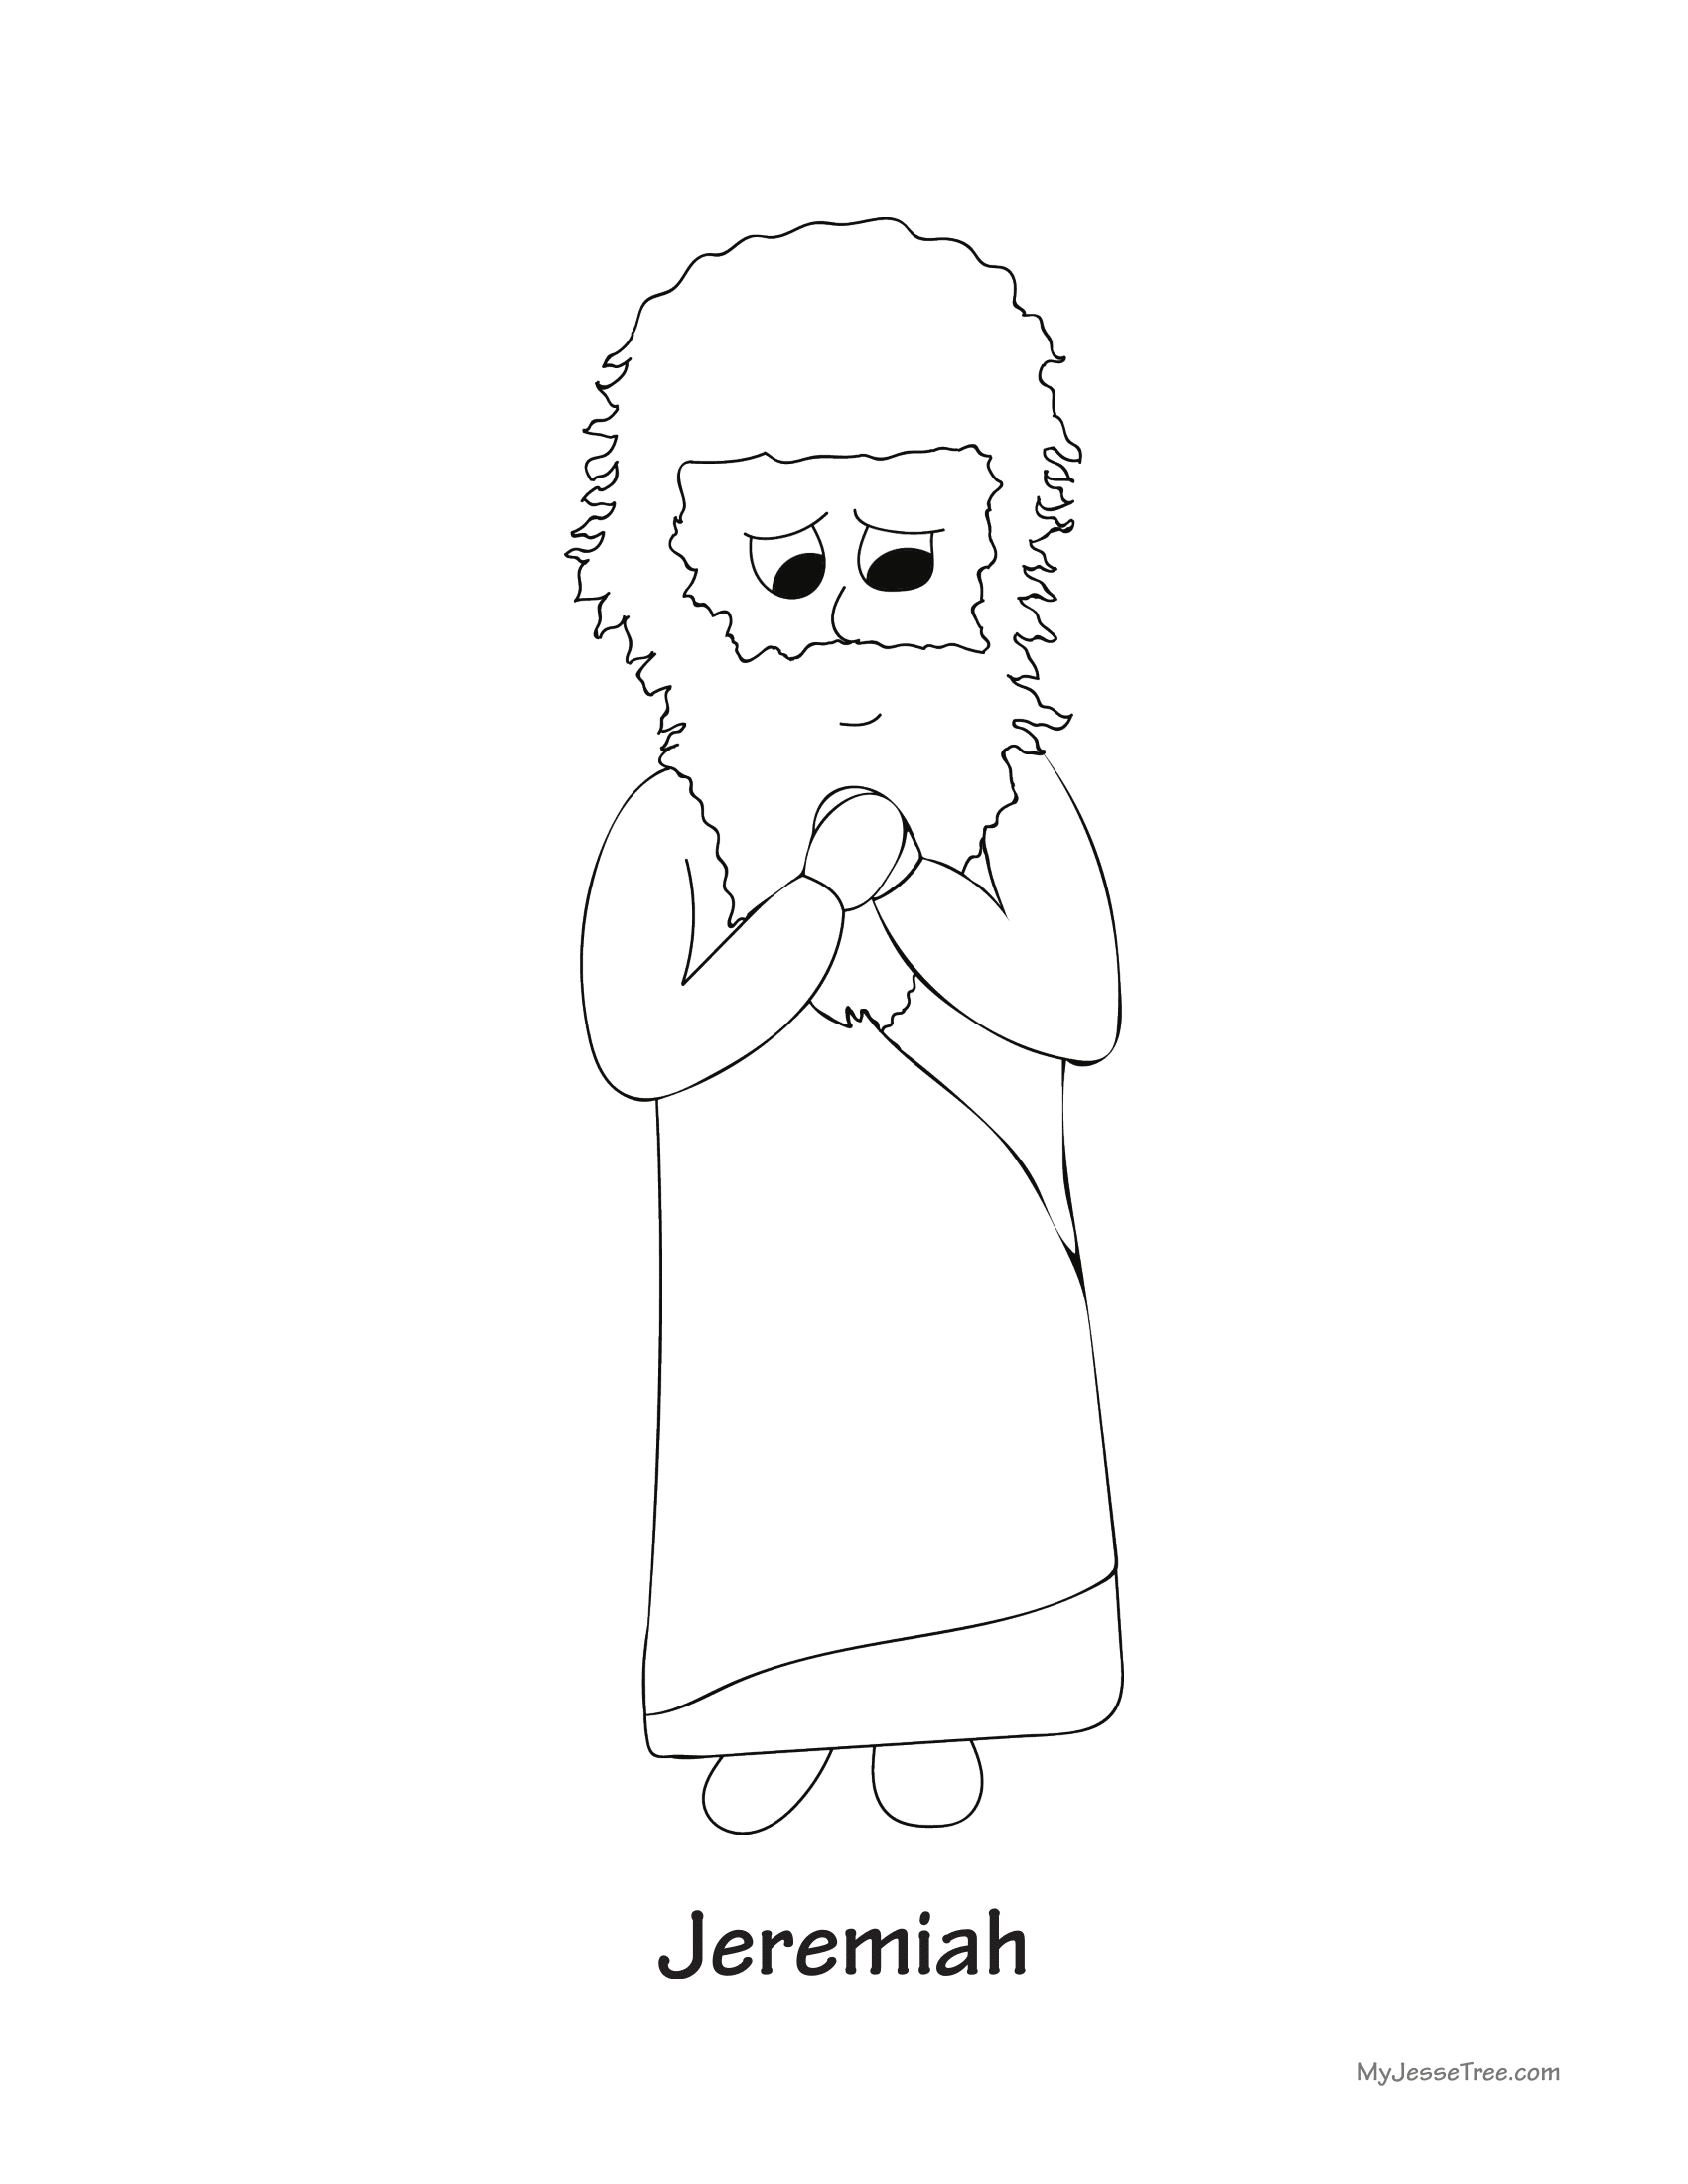 Jeremiah Coloring Sheet